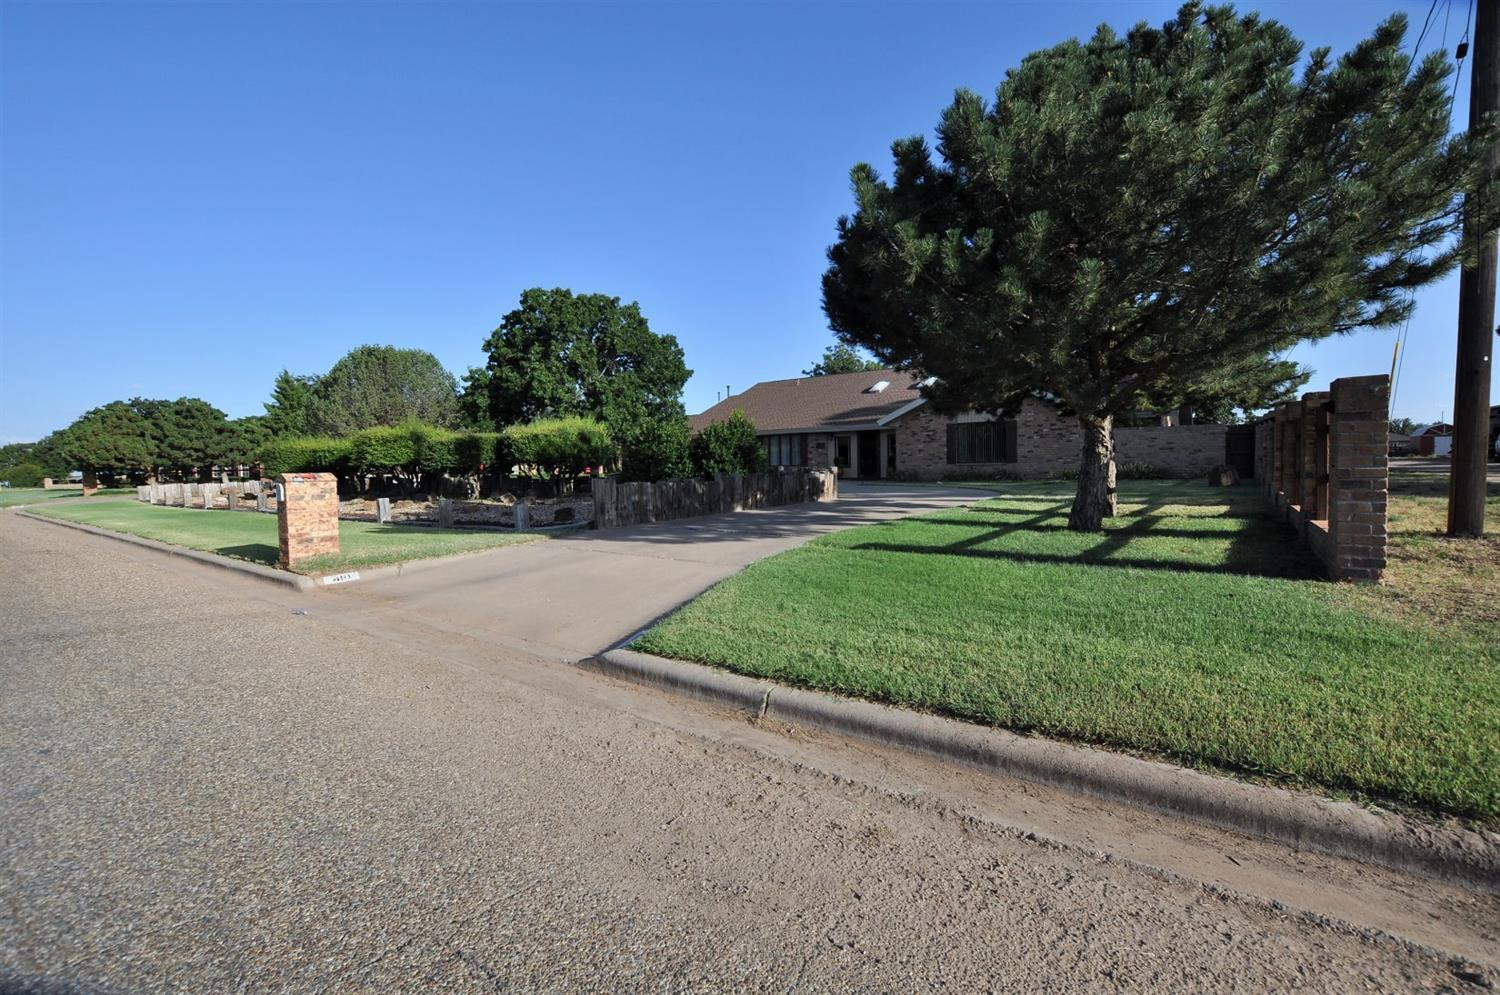 Beautiful 4054 sf. home on 1 acre of land. All rooms are very spacious. 3 bedrooms, 2 1/2 bath, 2 dining areas, office, huge basement, large 25 X 50 shop with 2 overhead doors (large enough to store big camper). Shop has dumping station. Kitchen features granite counter tops, dishwasher, garbage disposal, trash compactor, built in rangetop, new microwave and oven. Backyard is fenced and has an awesome pool recently installed, covered porch, mature trees, nice shed and sprinkler system. Lots of parking area including RV or trailer parking. This home is a must see! Call today to schedule your private tour.